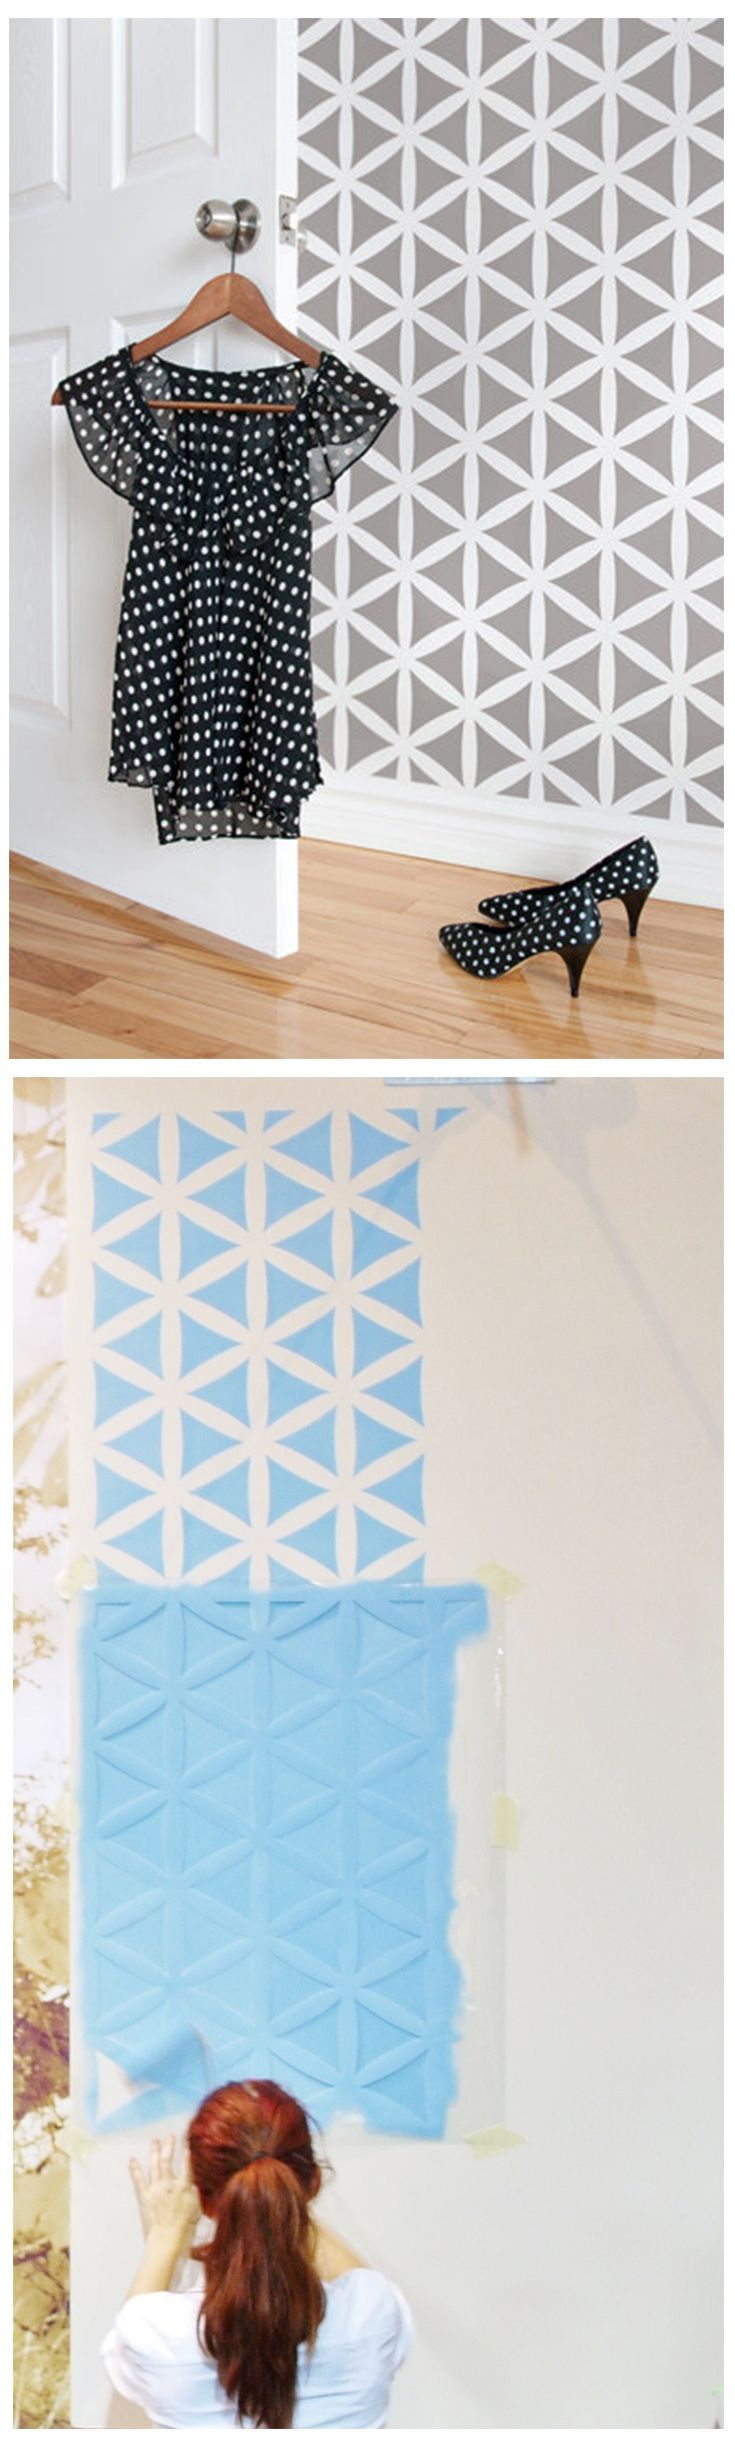 Flower of Life geometric pattern. Large wall stencil for diy project.